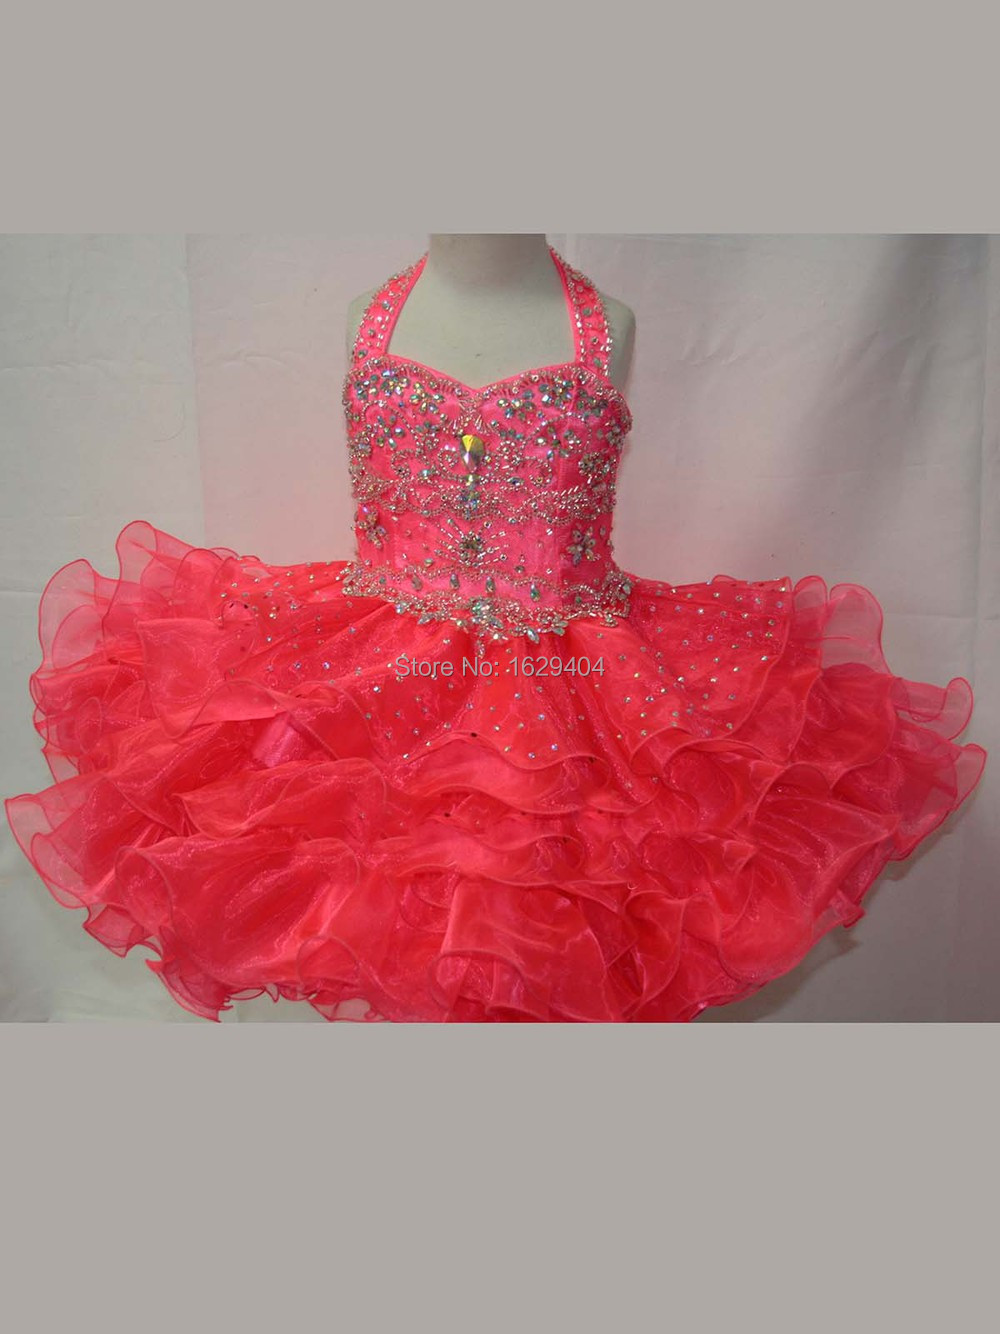 2015Attractive Peach Toddler Pageant Gown Cupcake Garment Halter Sparkly Sequins Ruffled Flower Girls Dresses Off The Shoulder(China (Mainland))